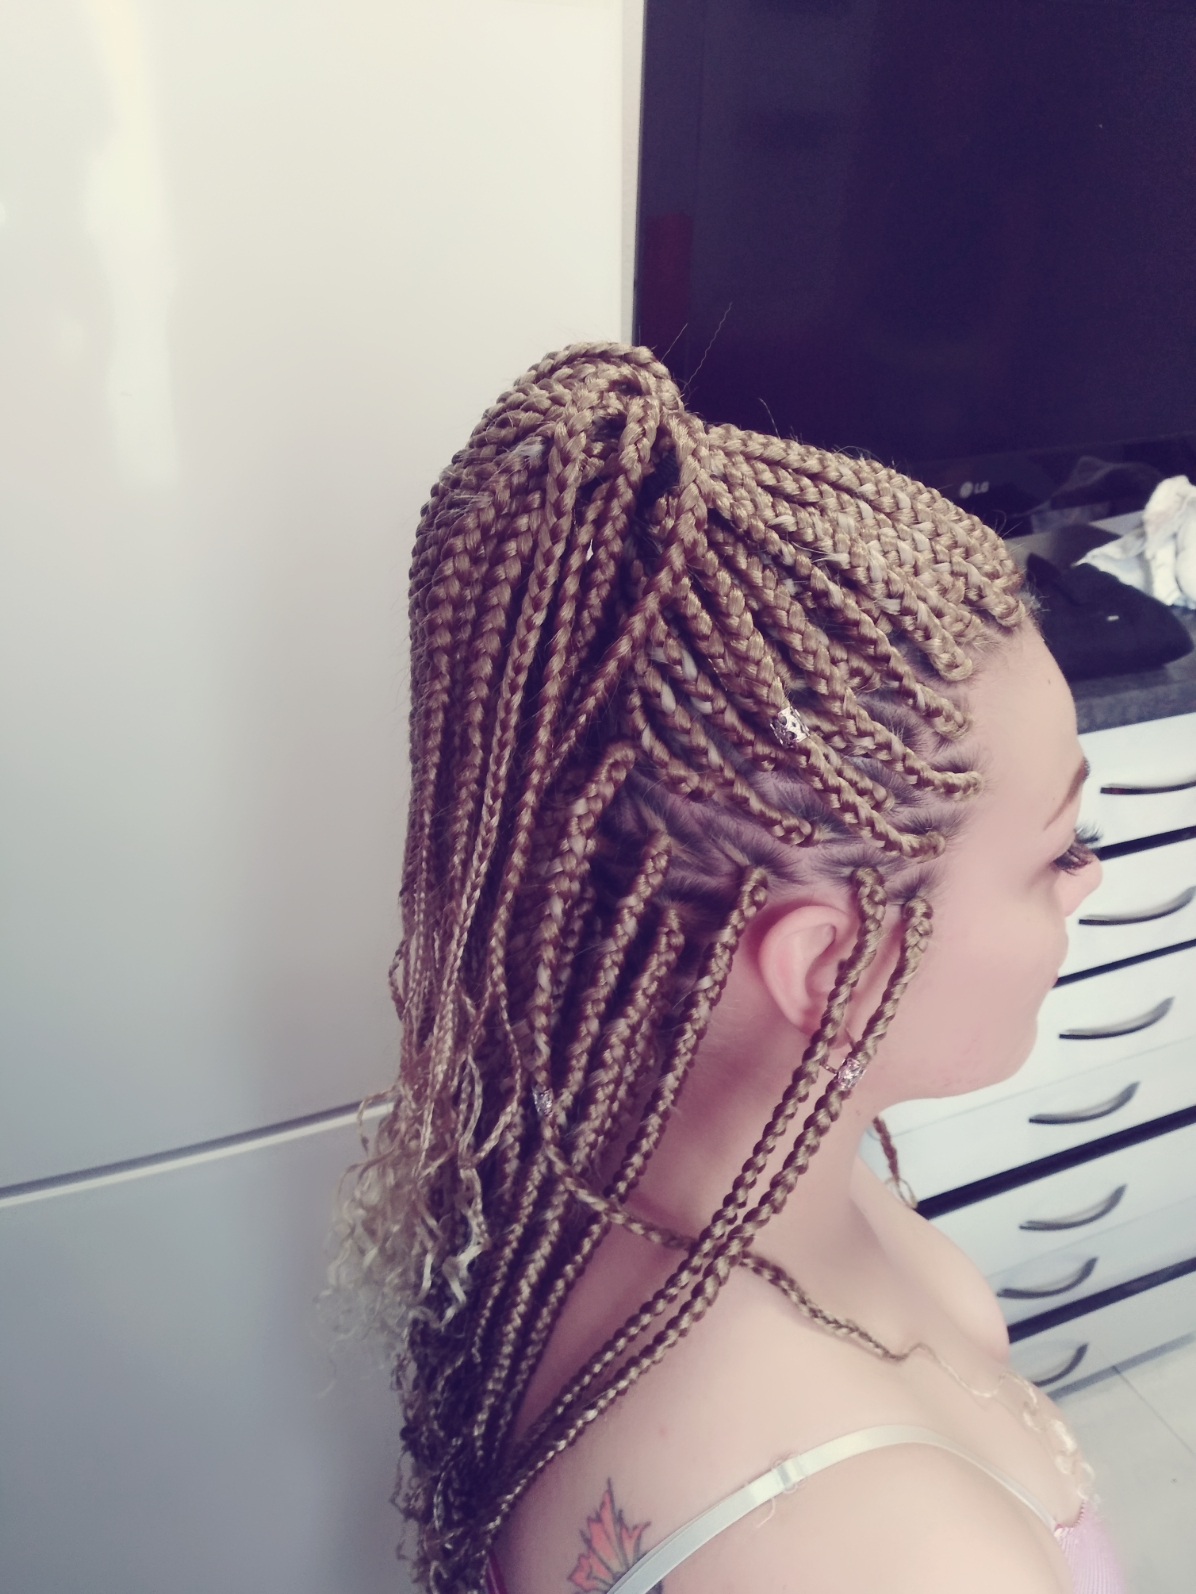 salon de coiffure afro tresse tresses box braids crochet braids vanilles tissages paris 75 77 78 91 92 93 94 95 WHCYGZTC